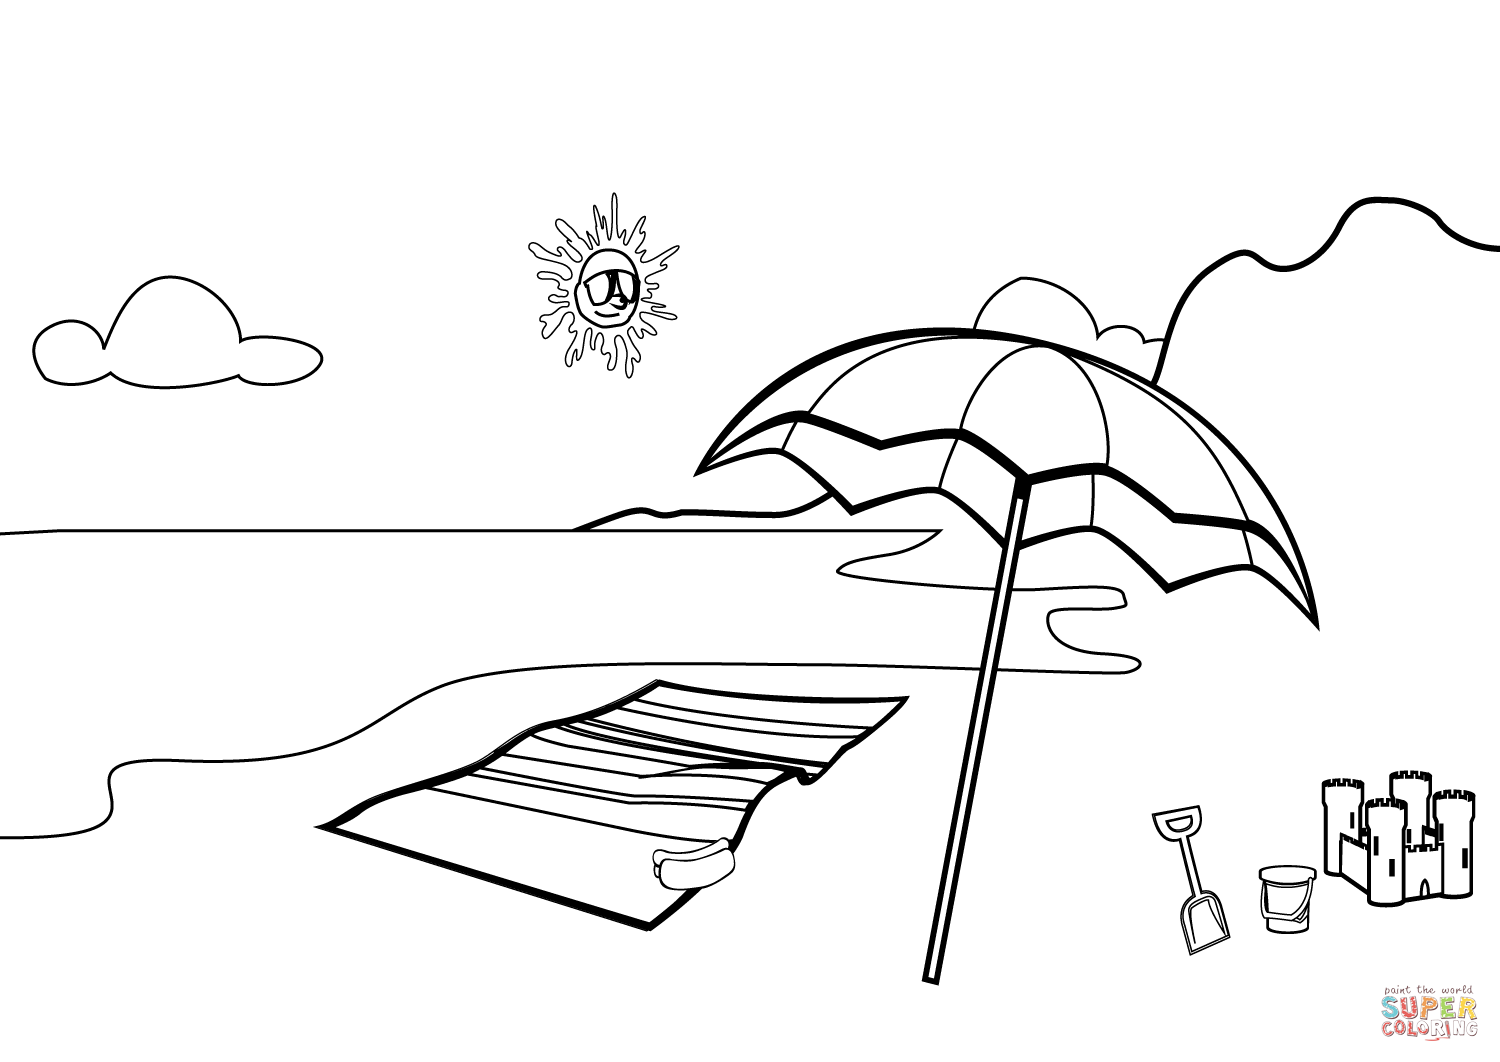 beach scene coloring pages beach coloring pages beach scenes activities beach coloring scene pages 1 1